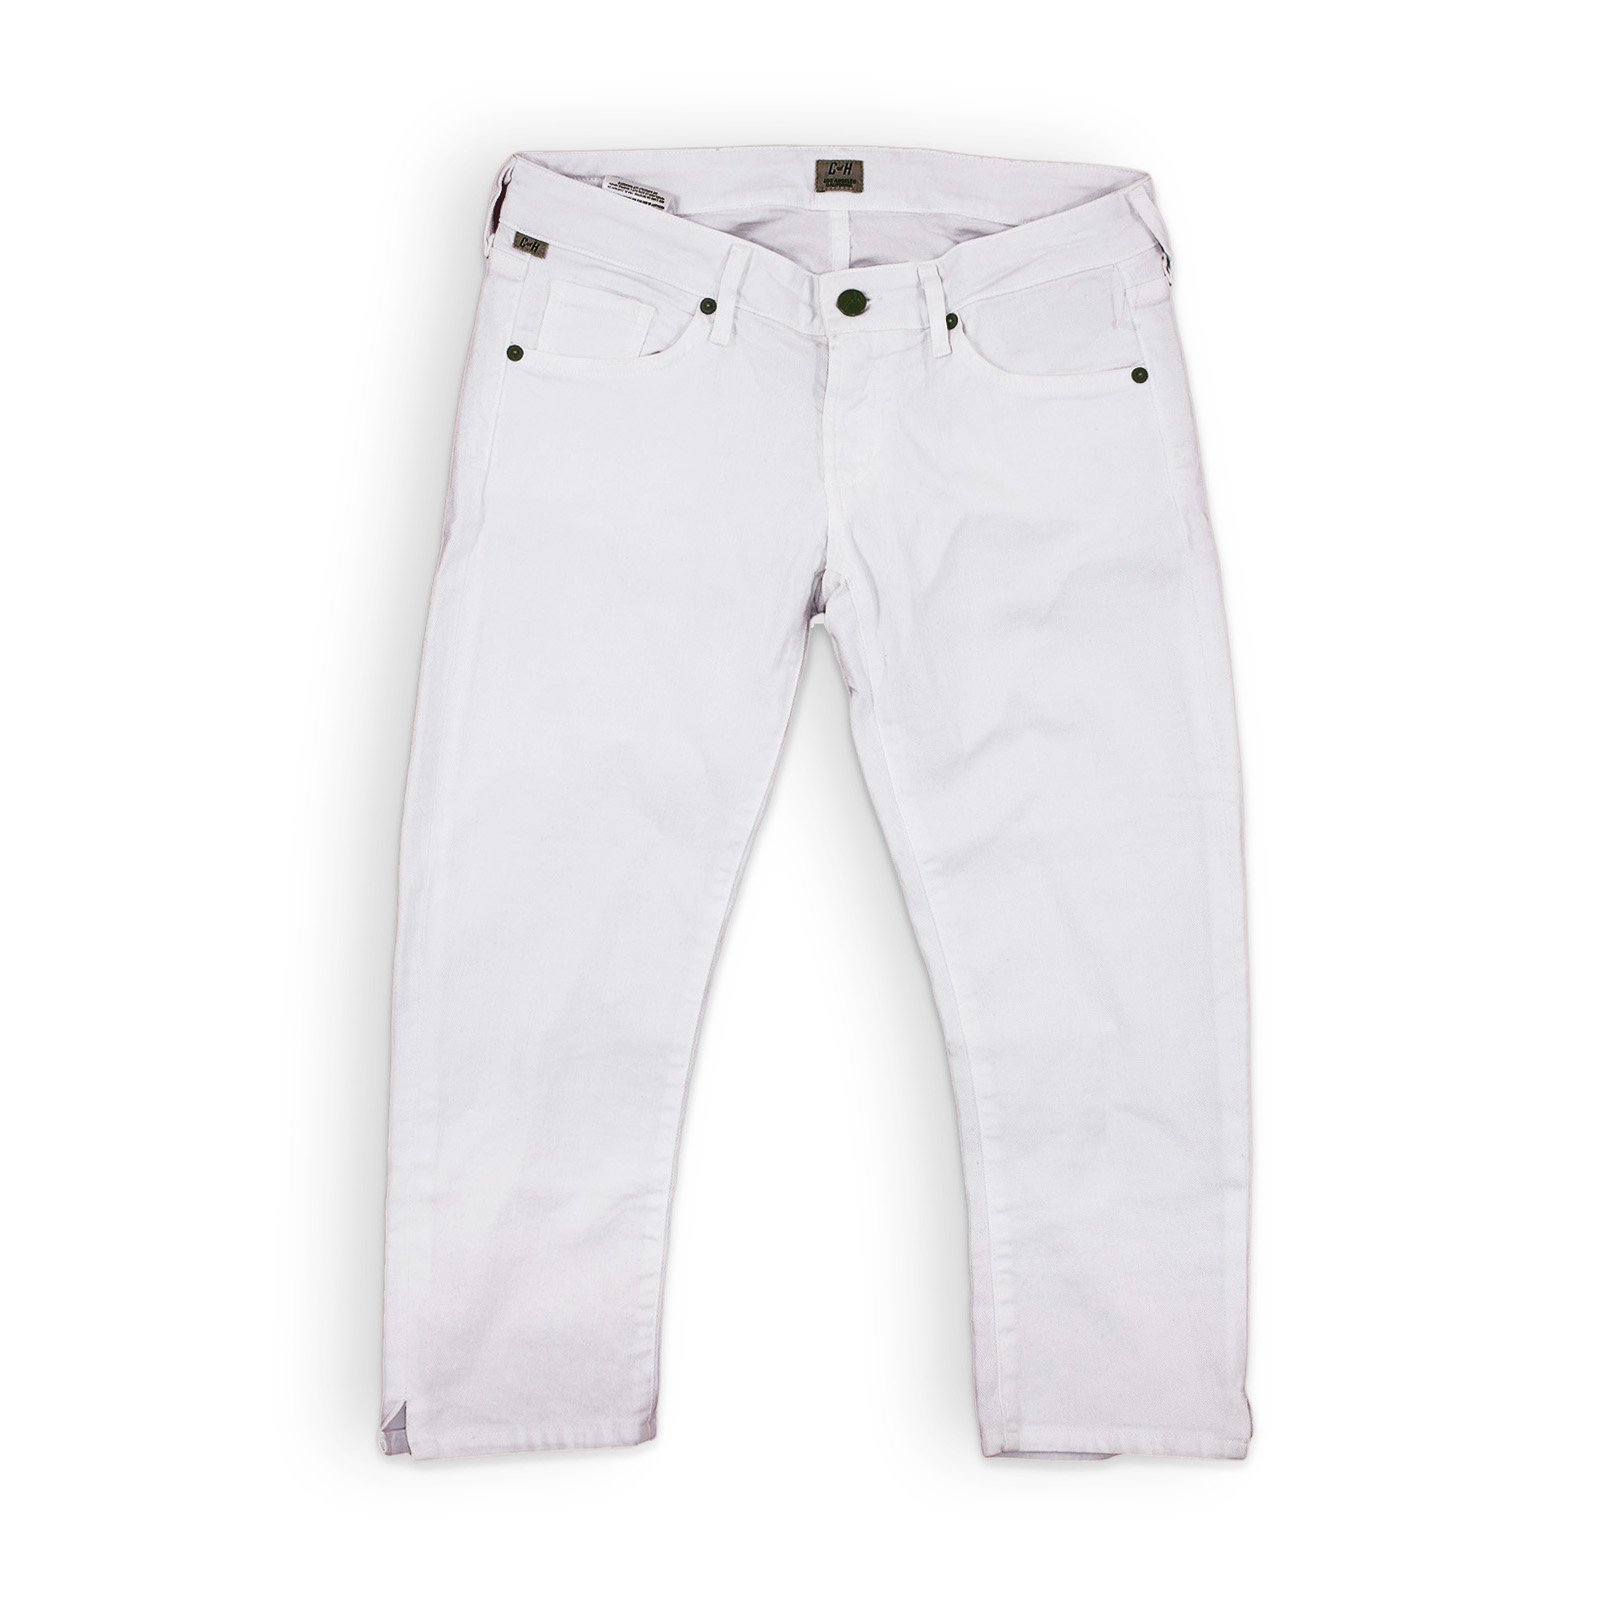 White Cropped Jeans - My New Find